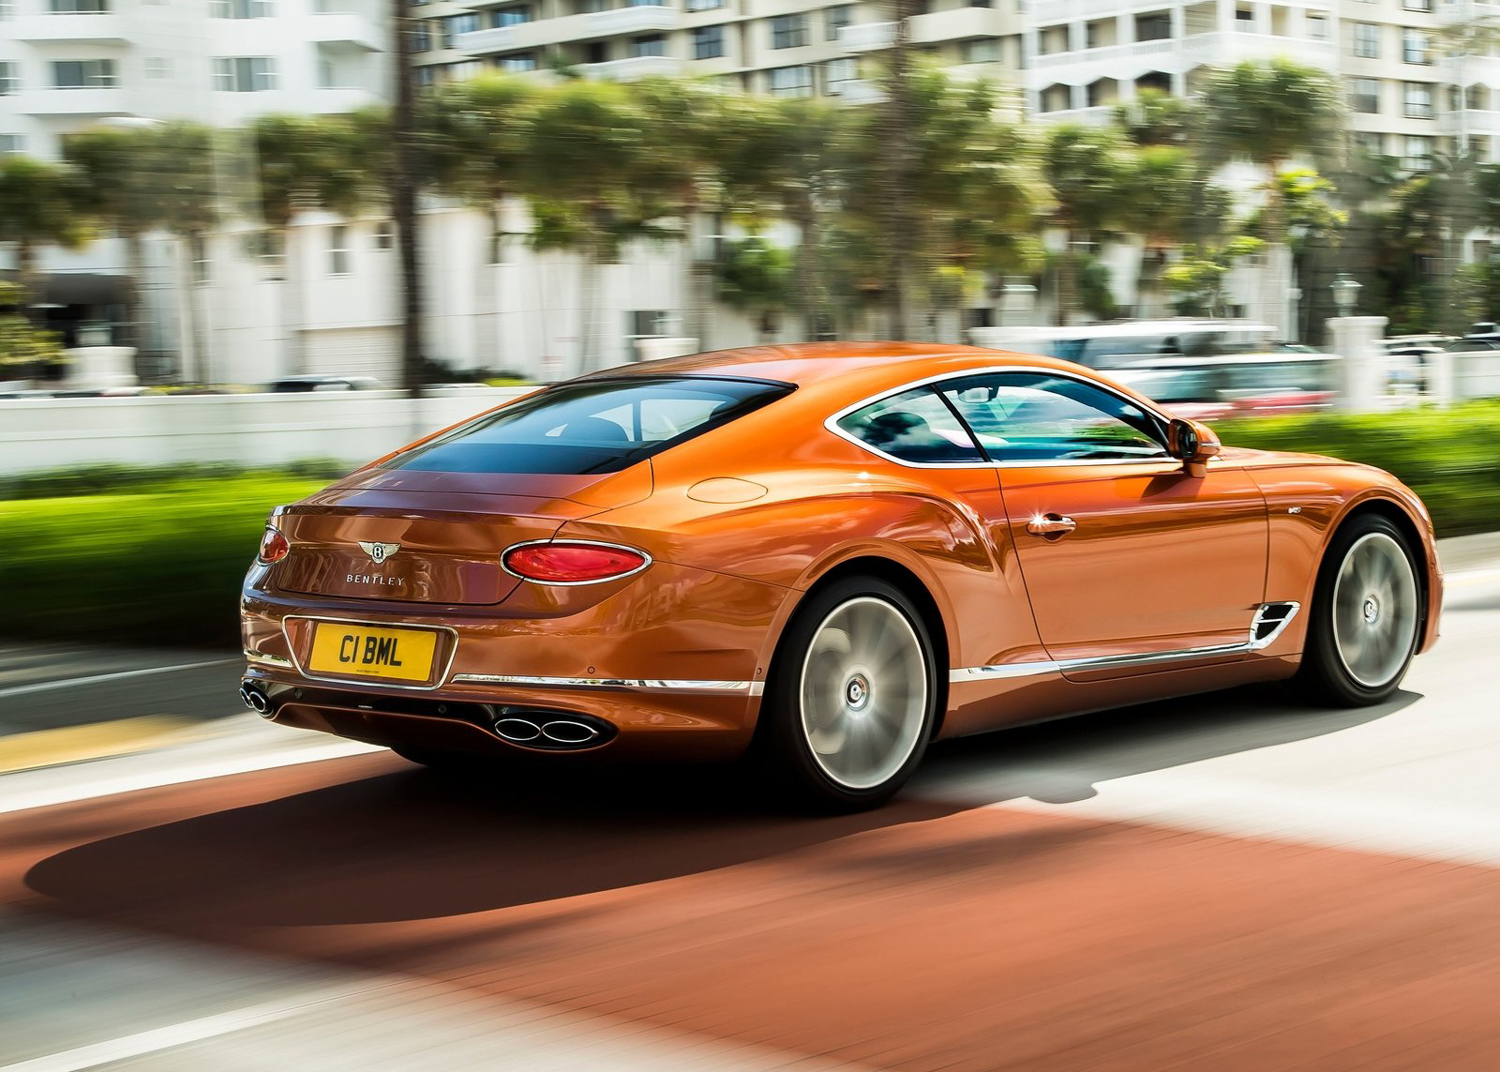 2020 Bentley Continental GT V8 rear 3/4 orange